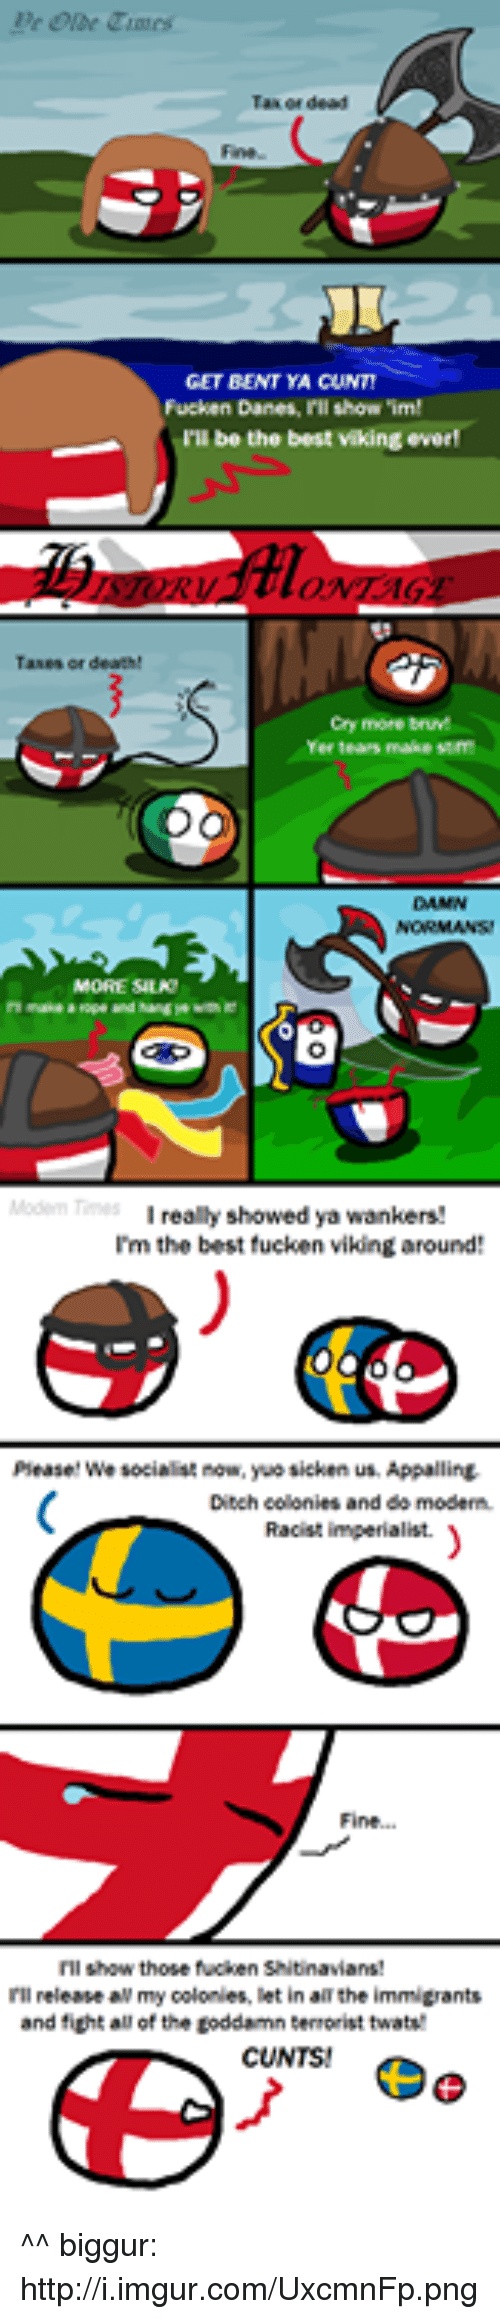 yuo: Fucken Danes, l'll show 'im!  be the best viking everl  Cry more bruM  really showed ya wankers!  I'm the best fucken vikingaround  Please! We socialist now, yuo sicken us. Appalling,  Ditch colonies and do modern.  Racist imperialist.  I'll release all my colonies, let in allthe immigrants  and fight all of the toddamn terrorist twatw  CUNTS! ^^  biggur: http://i.imgur.com/UxcmnFp.png